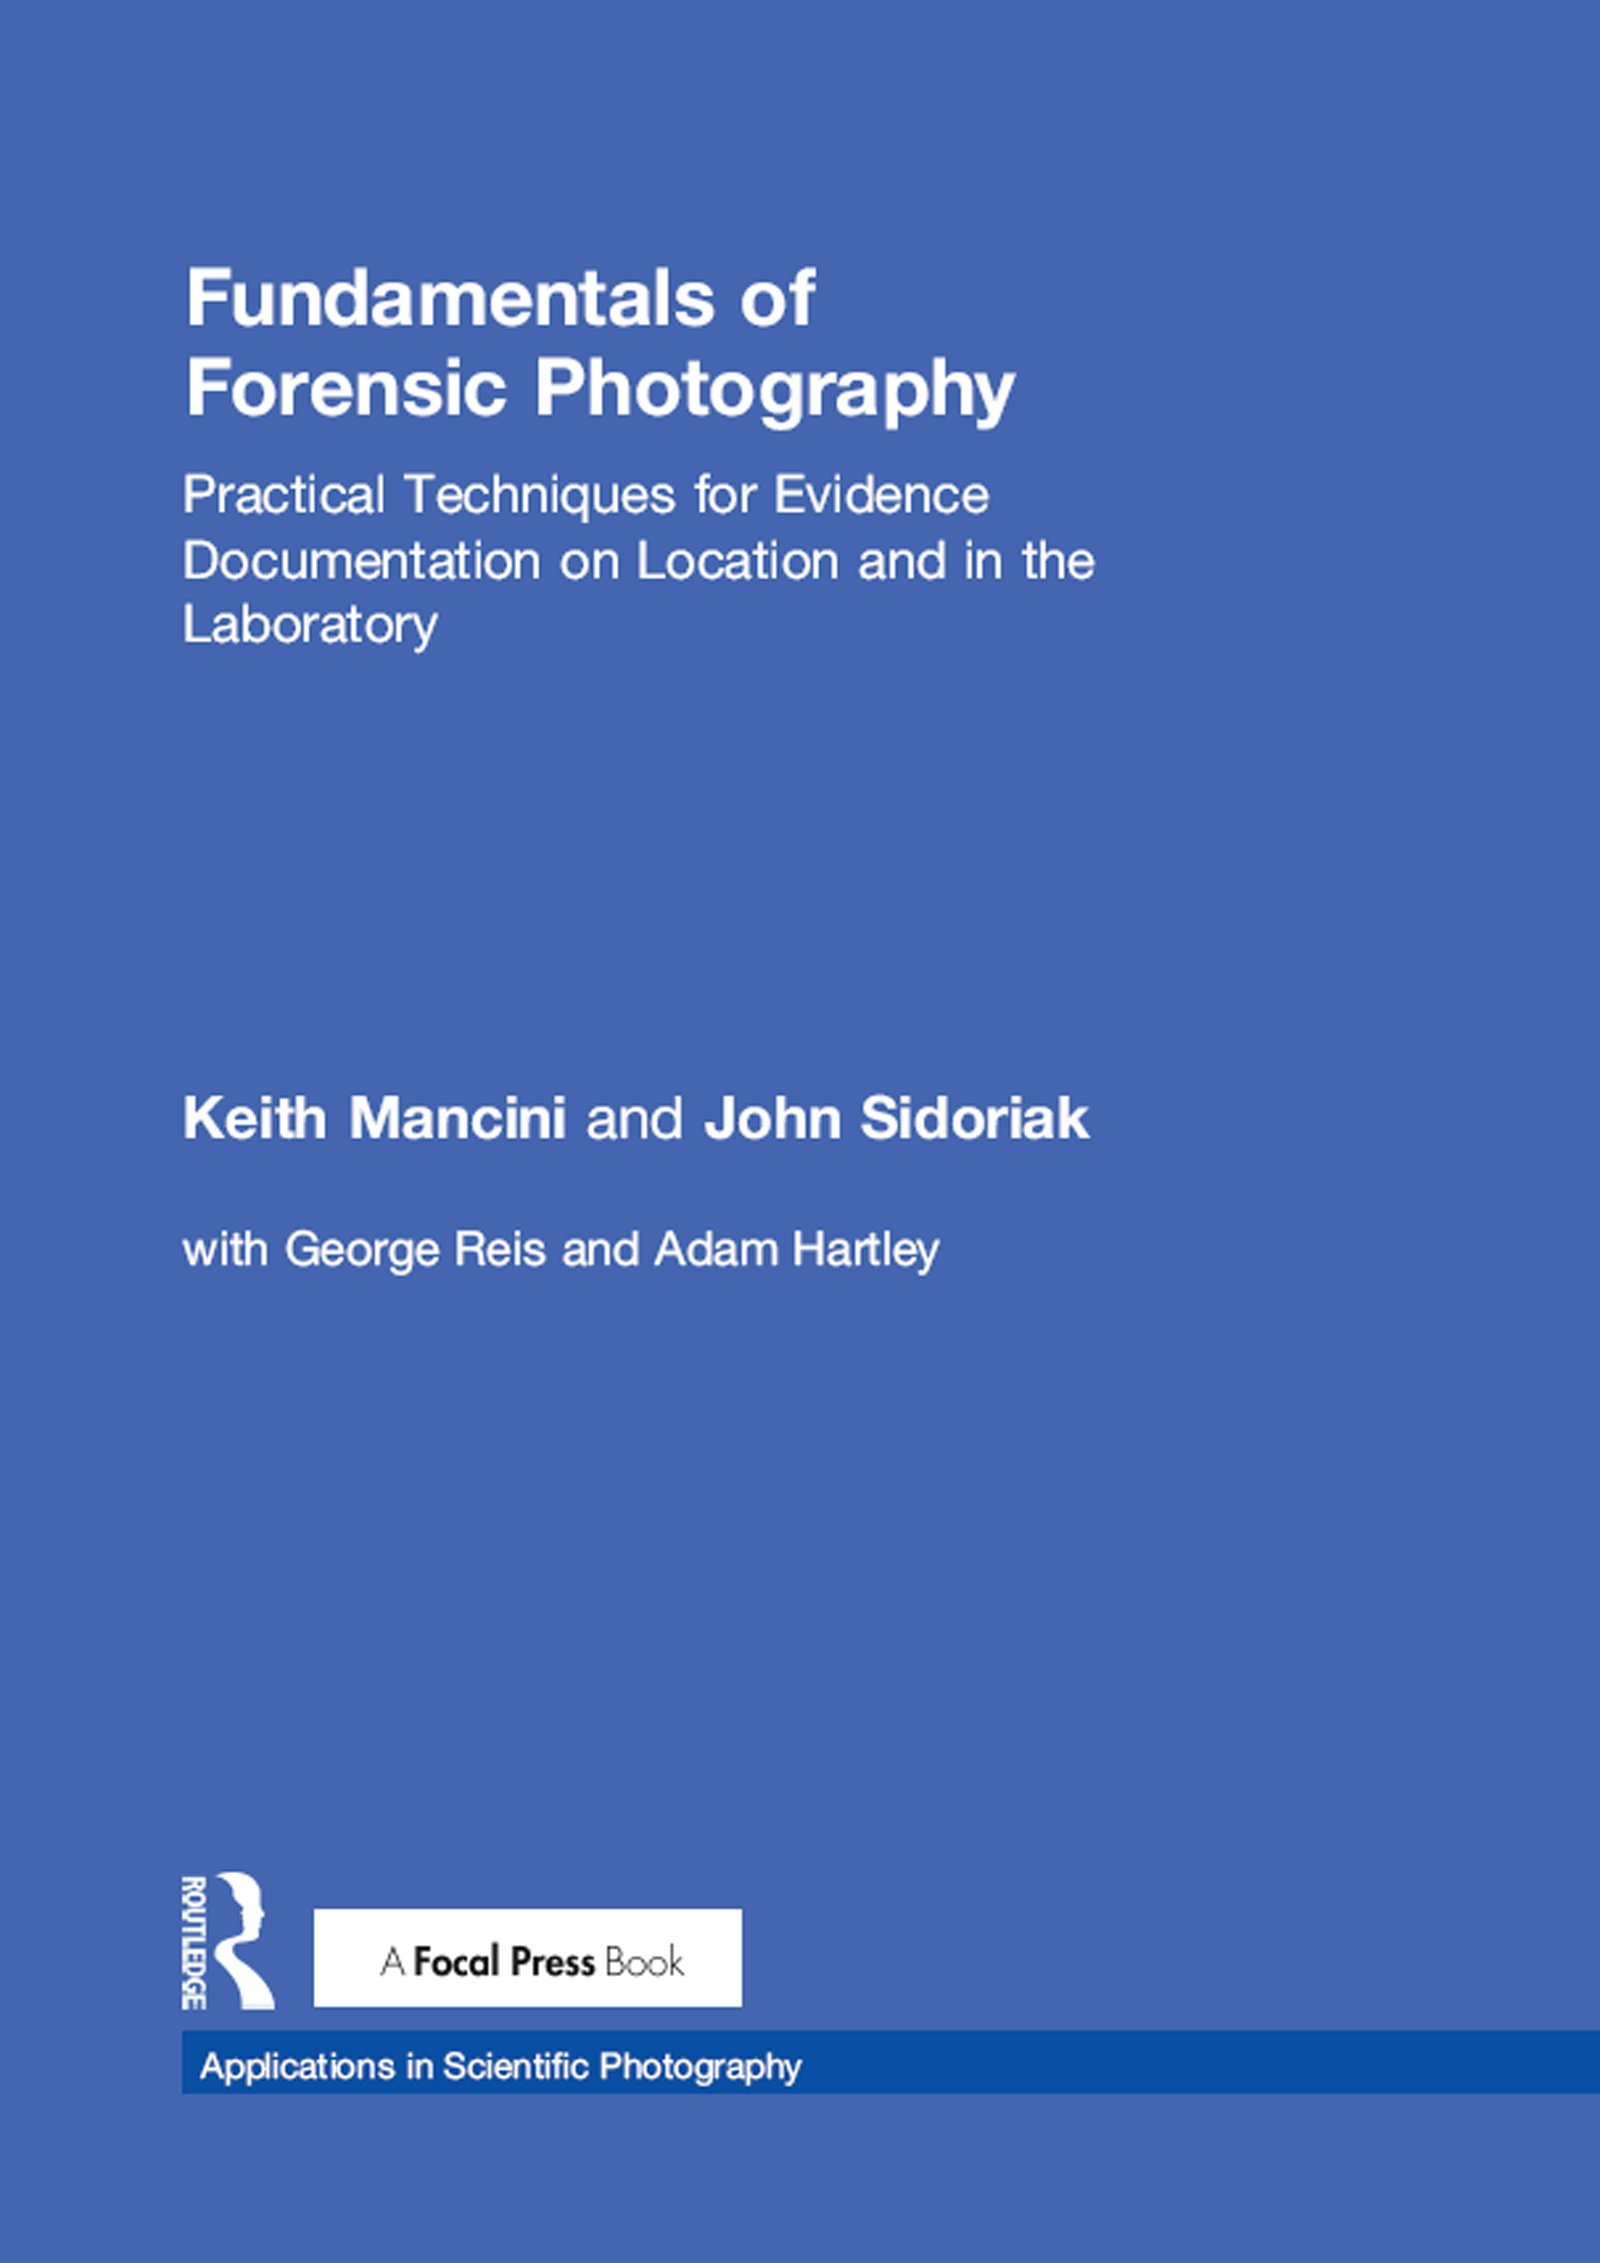 Fundamentals of Forensic Photography: Practical Techniques for Evidence Documentation on Location and in the Laboratory book cover